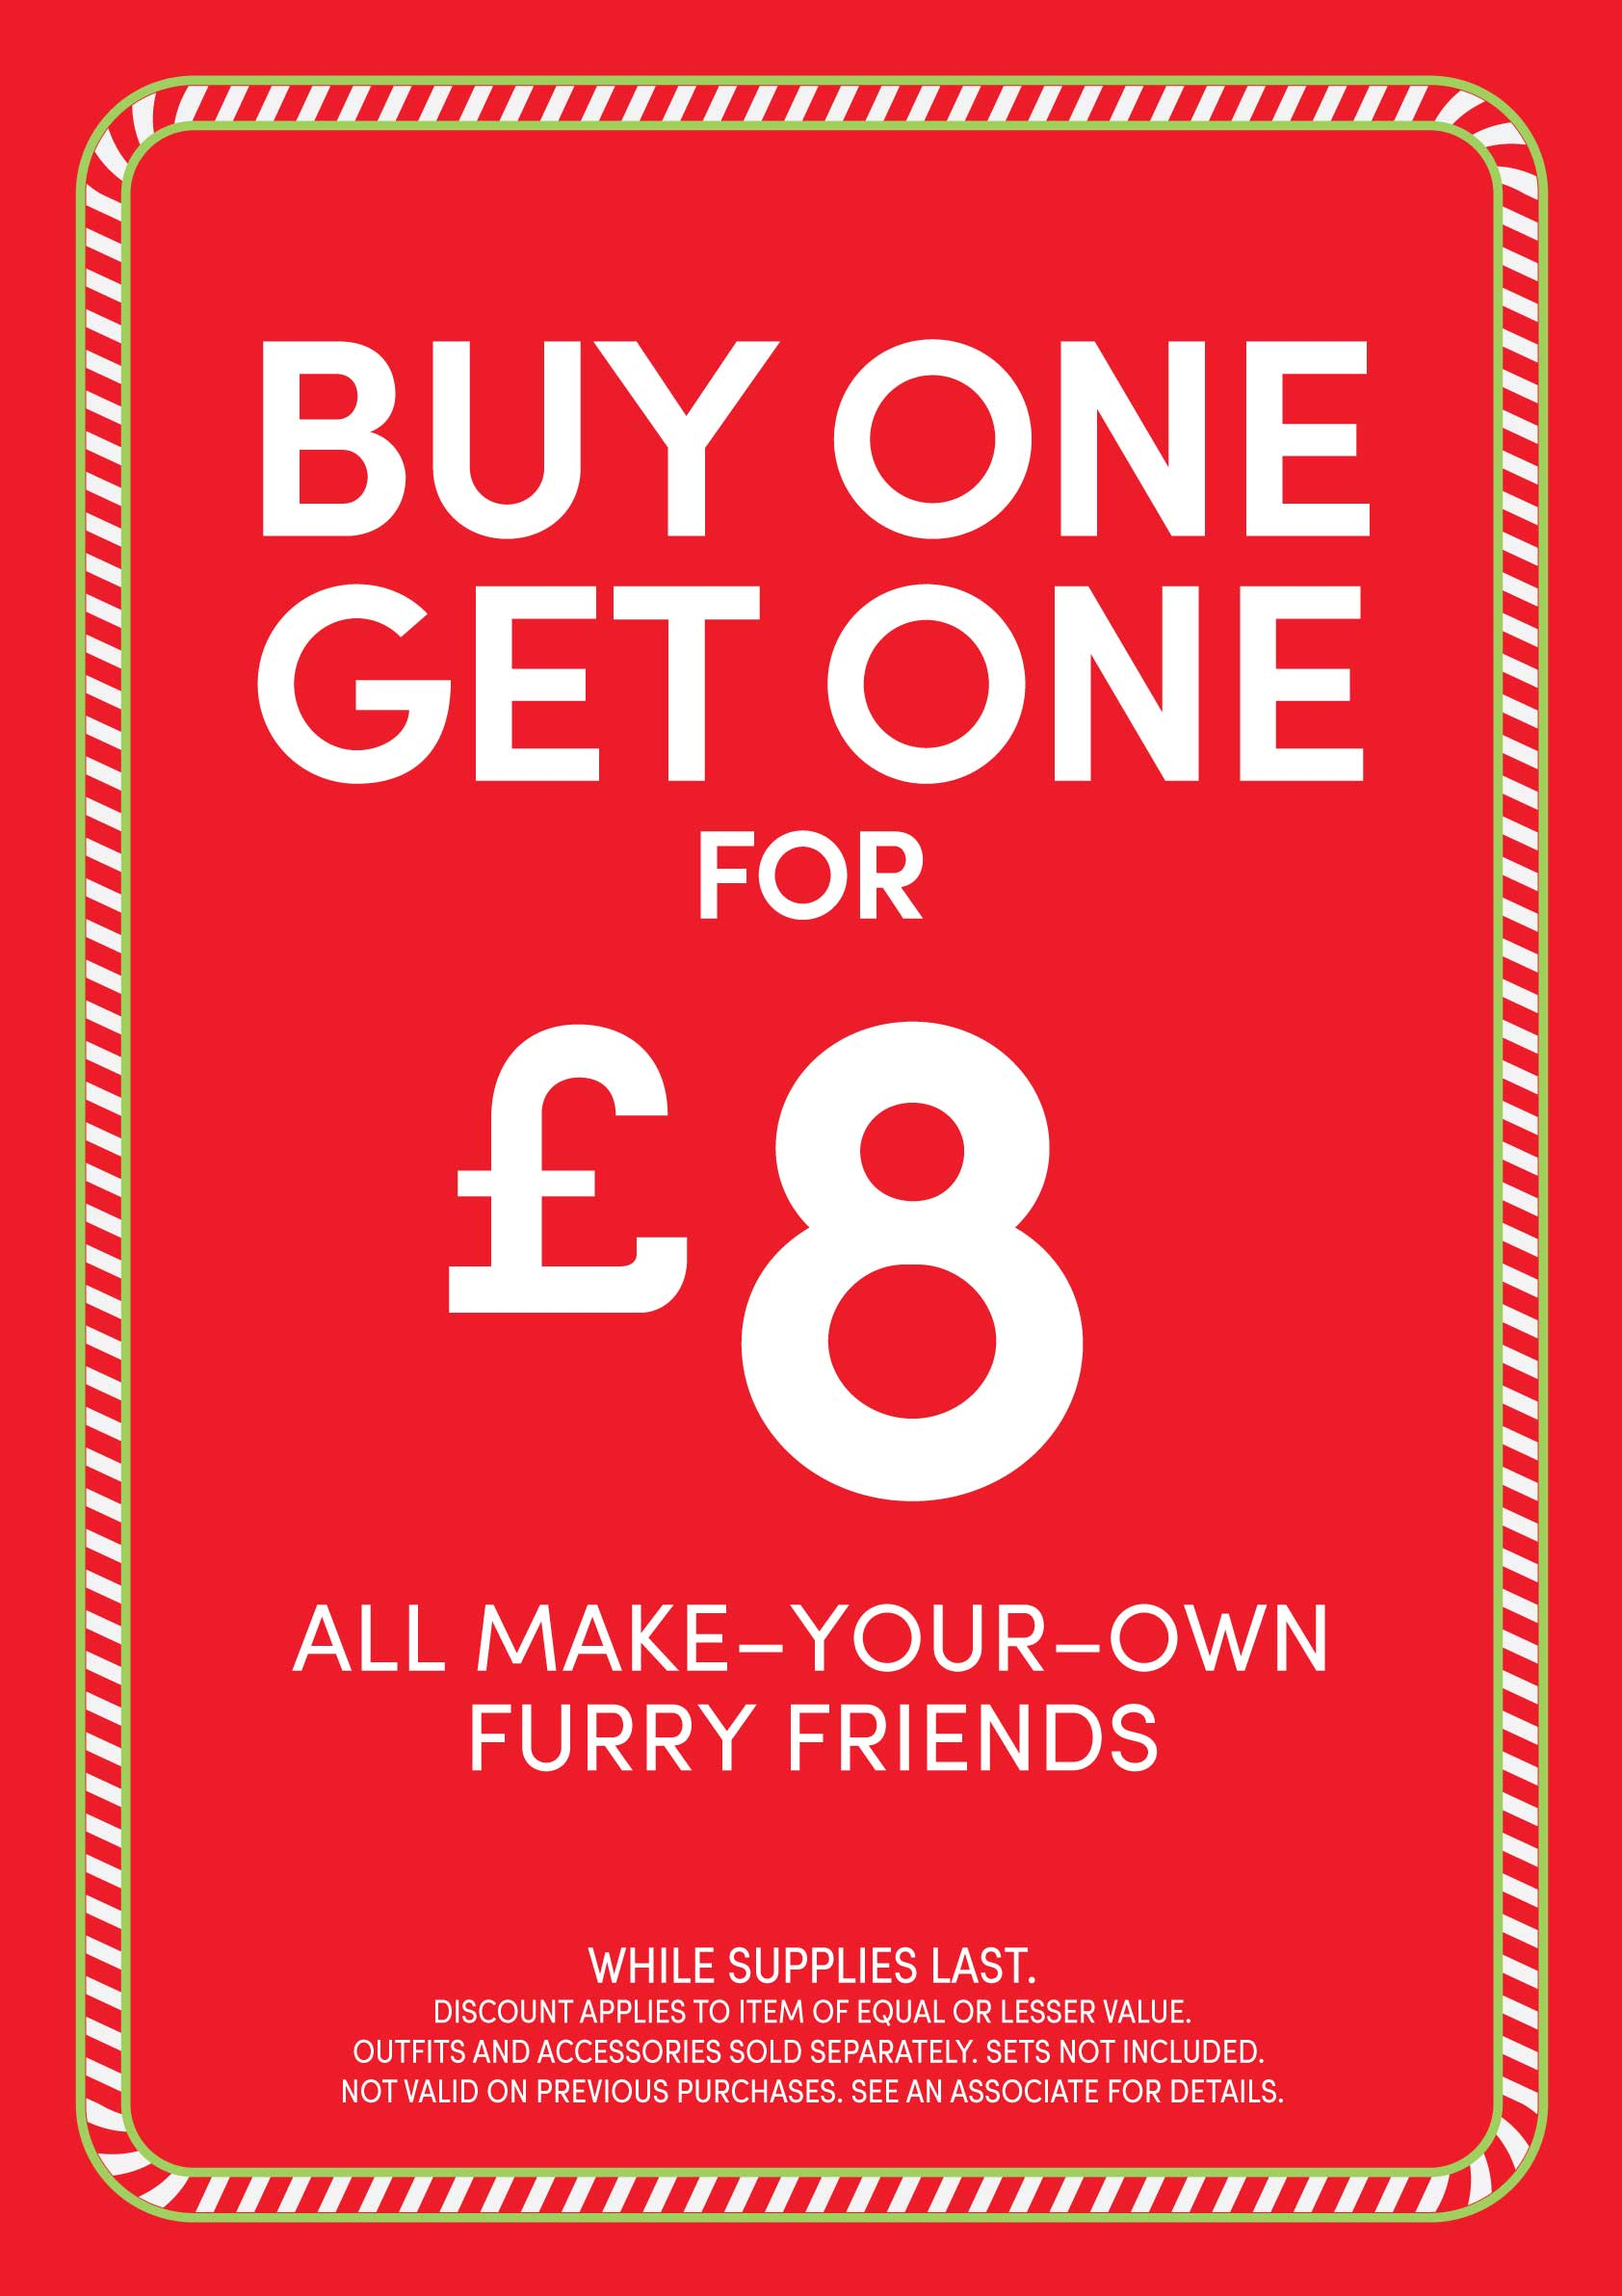 Build-A-Bear Workshop - Buy One, Get One £8